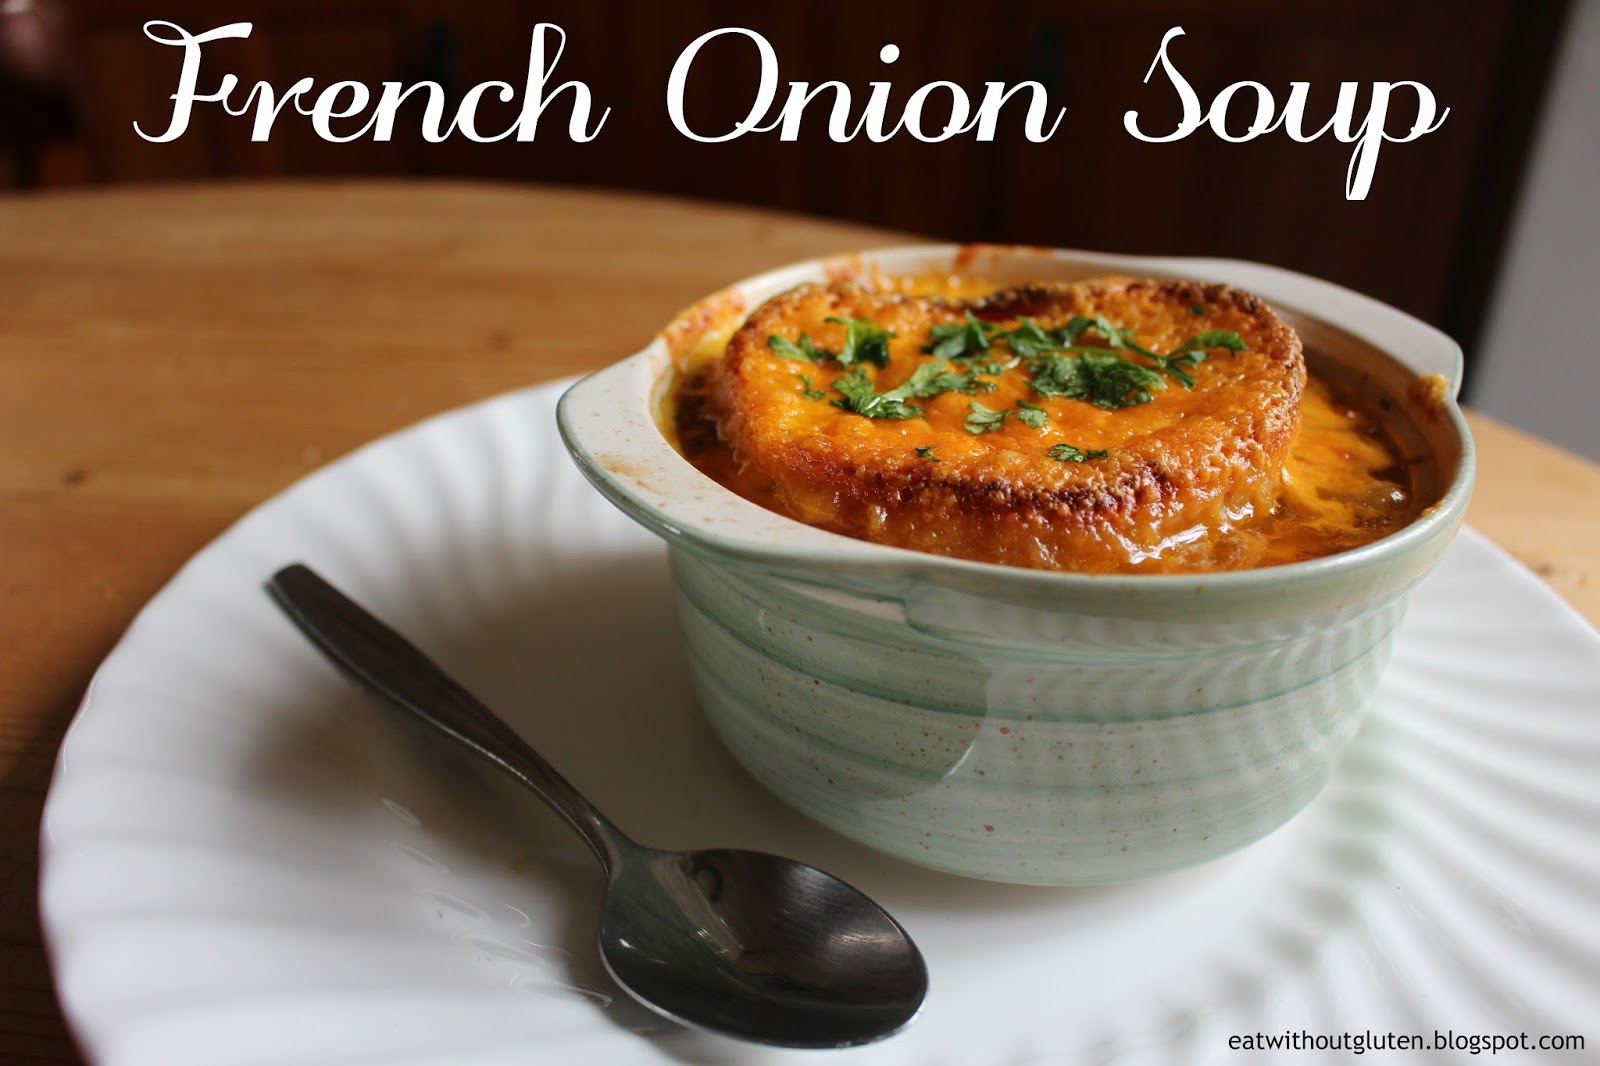 french onion soup french onion soup dip soup french onion soup french ...